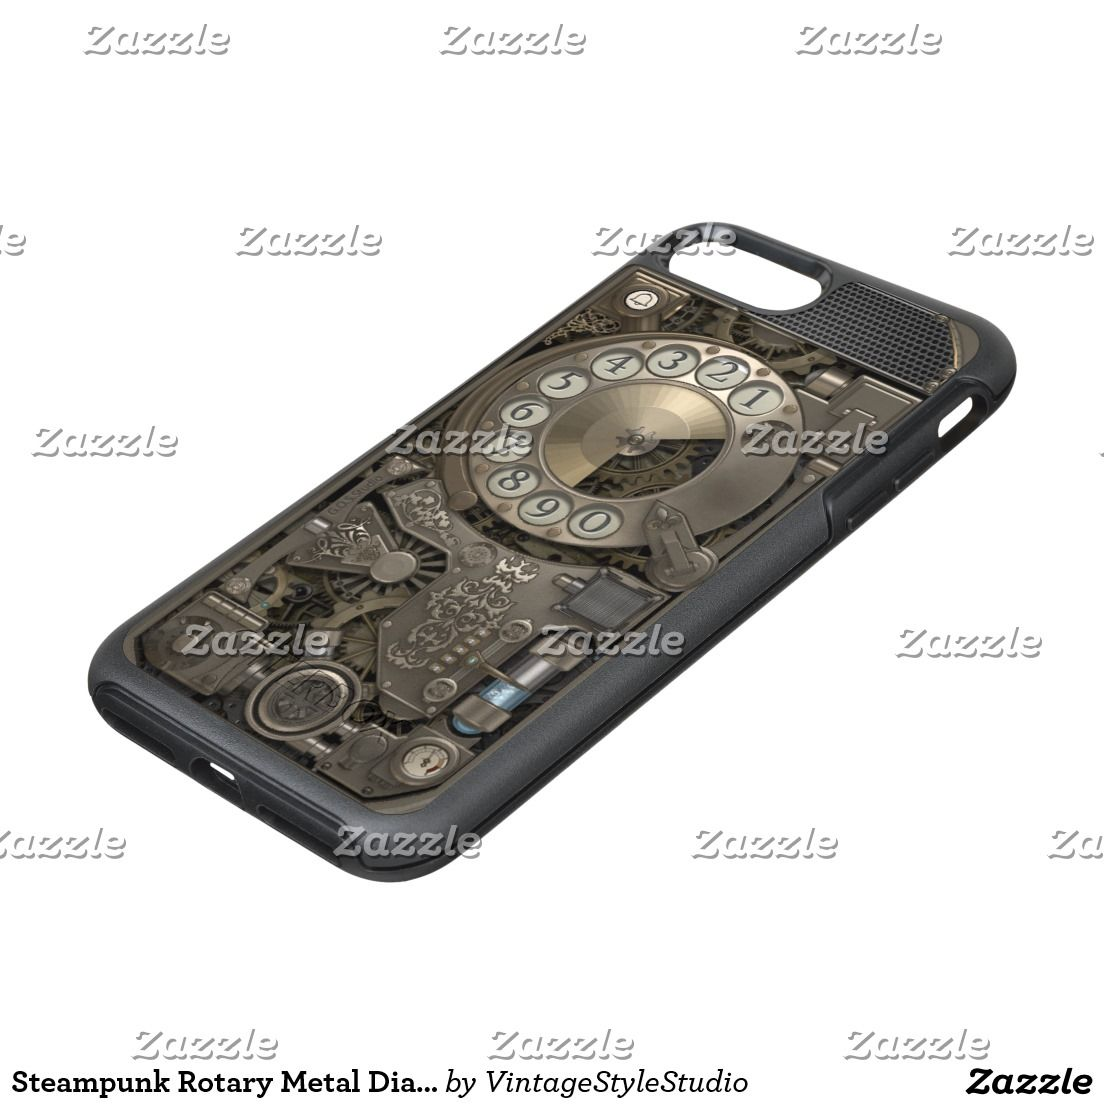 hight resolution of steampunk rotary metal dial phone otterbox symmetry iphone 7 plus case steampunk samsung iphone cases s6 s7 ipad samsunggalaxys victorian